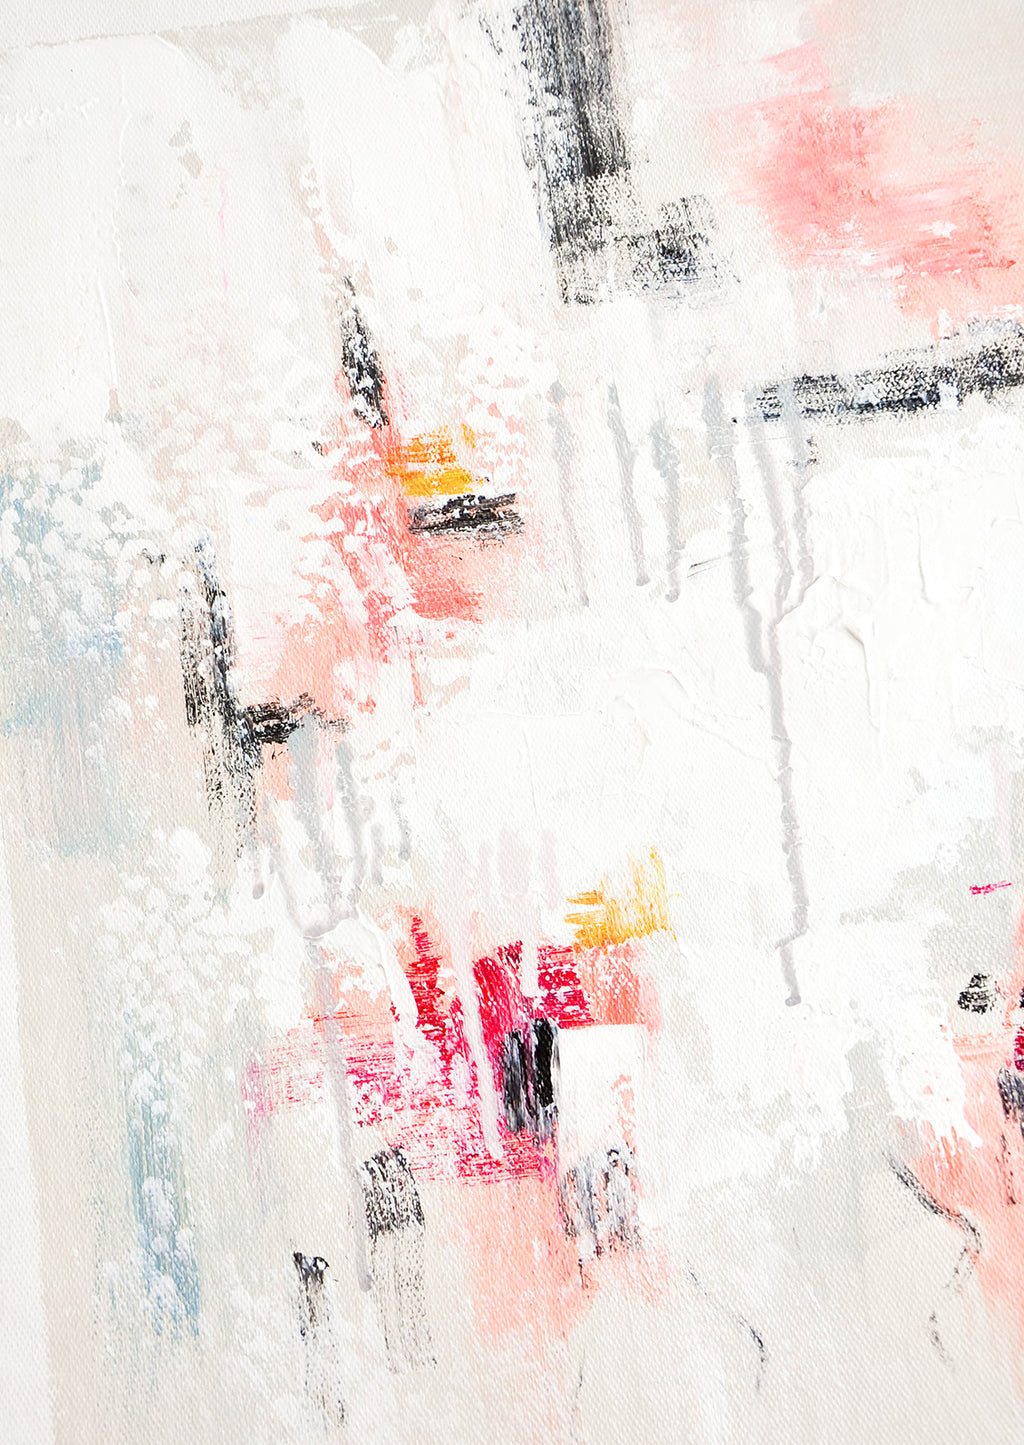 2: A close up of an abstract white, pink, and gray painting.